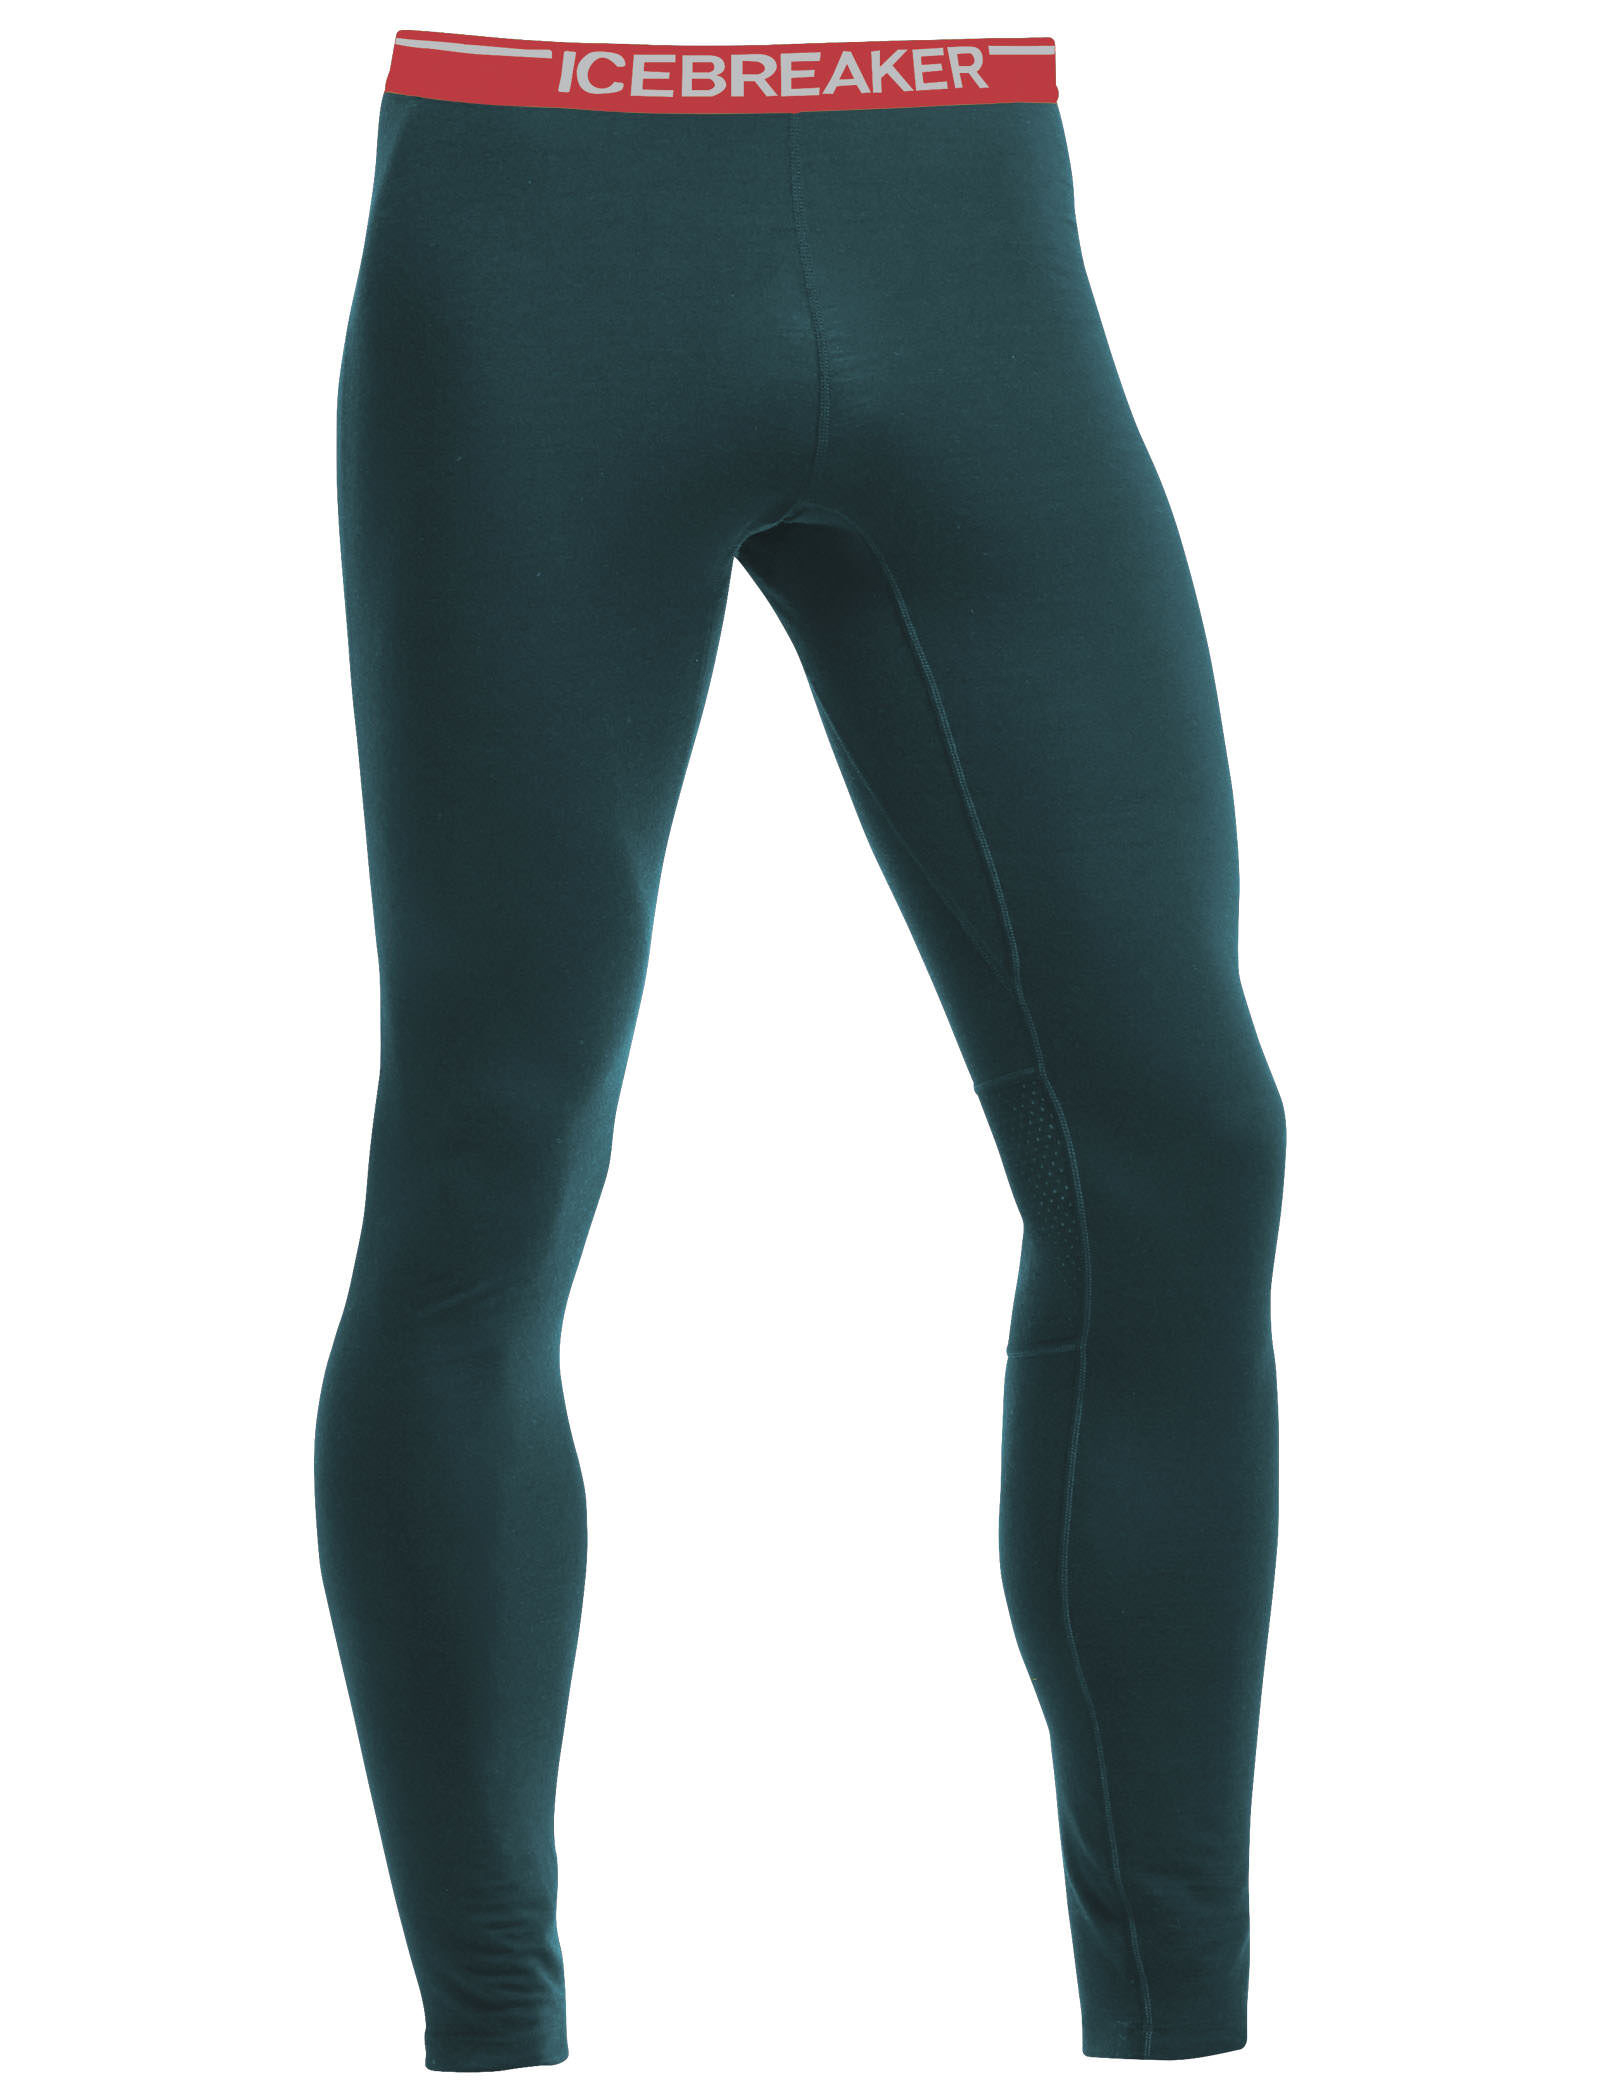 Camping & Outdoor Sonstige IceBreaker Base Layer Pants Unisex Size S